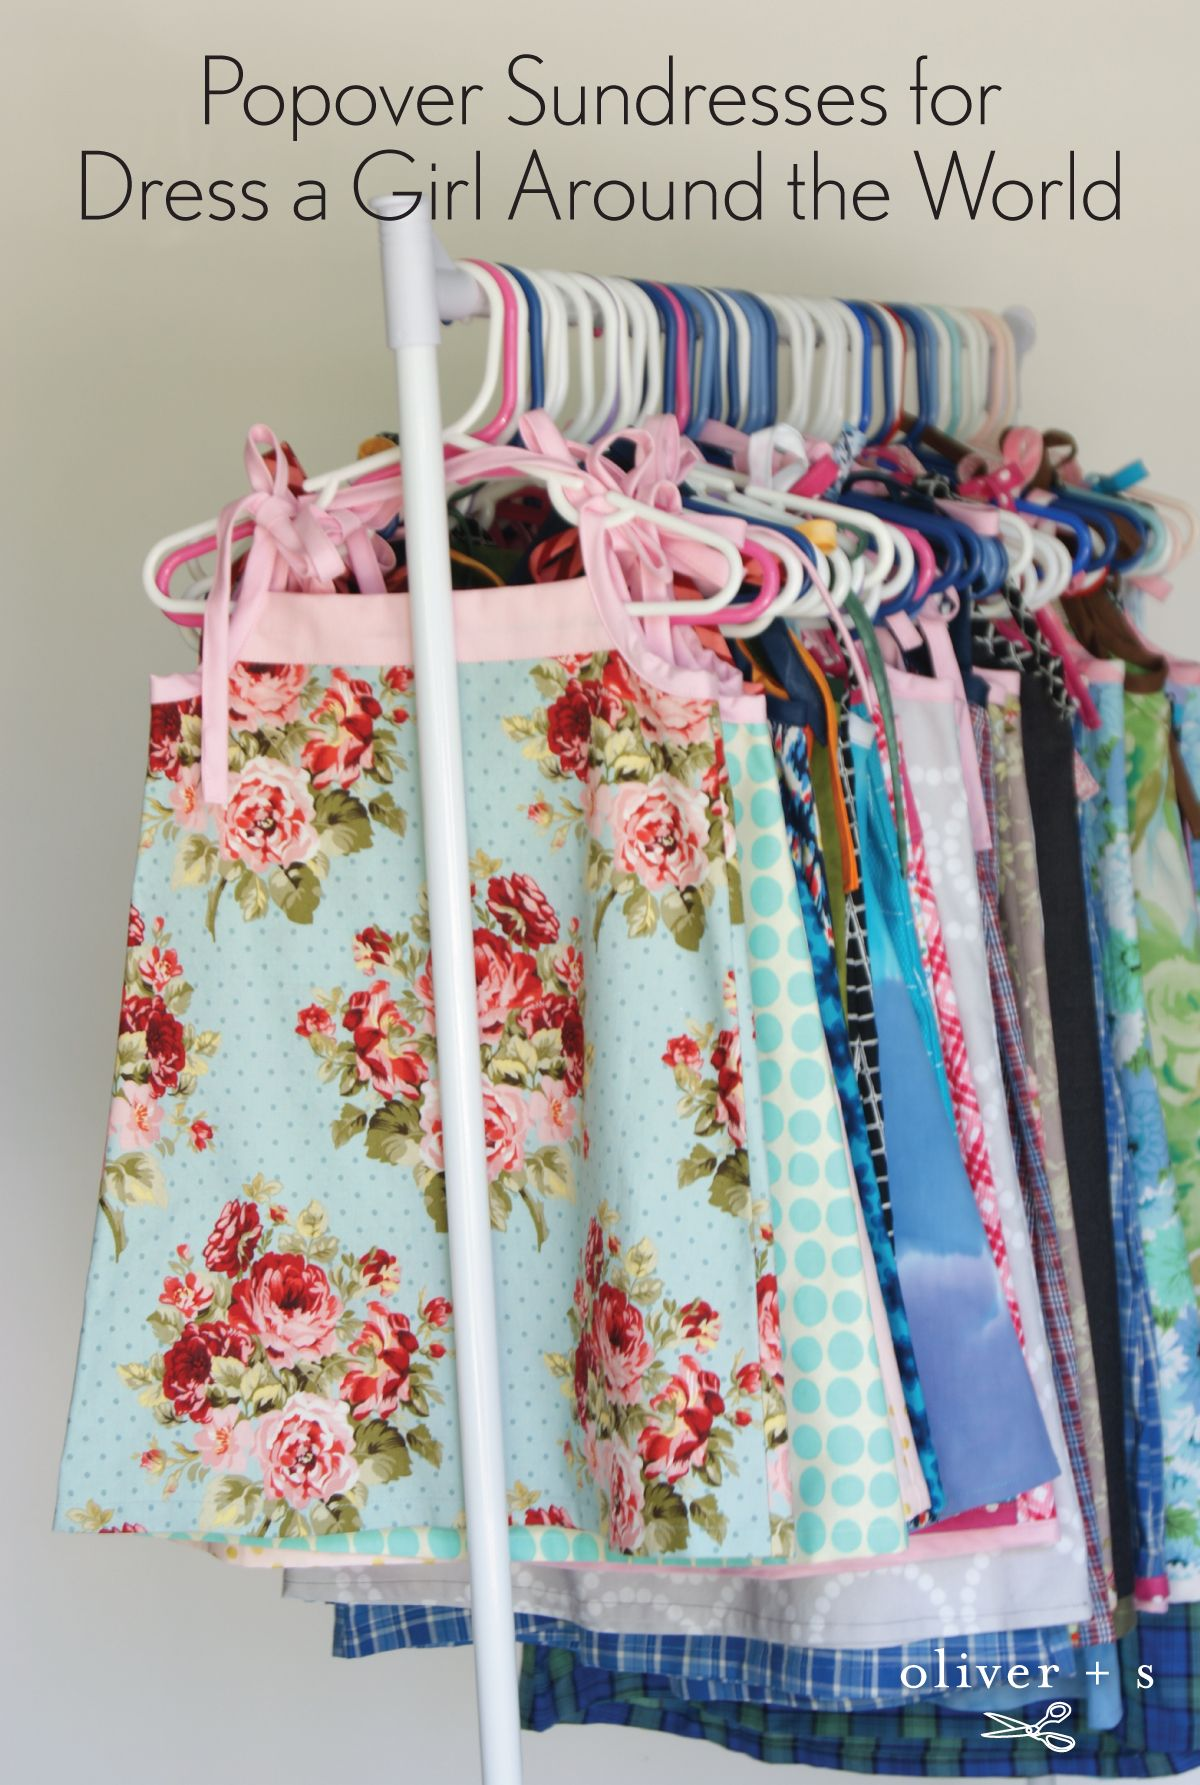 popover sundresses for dress a girl around the world | Kindersachen ...